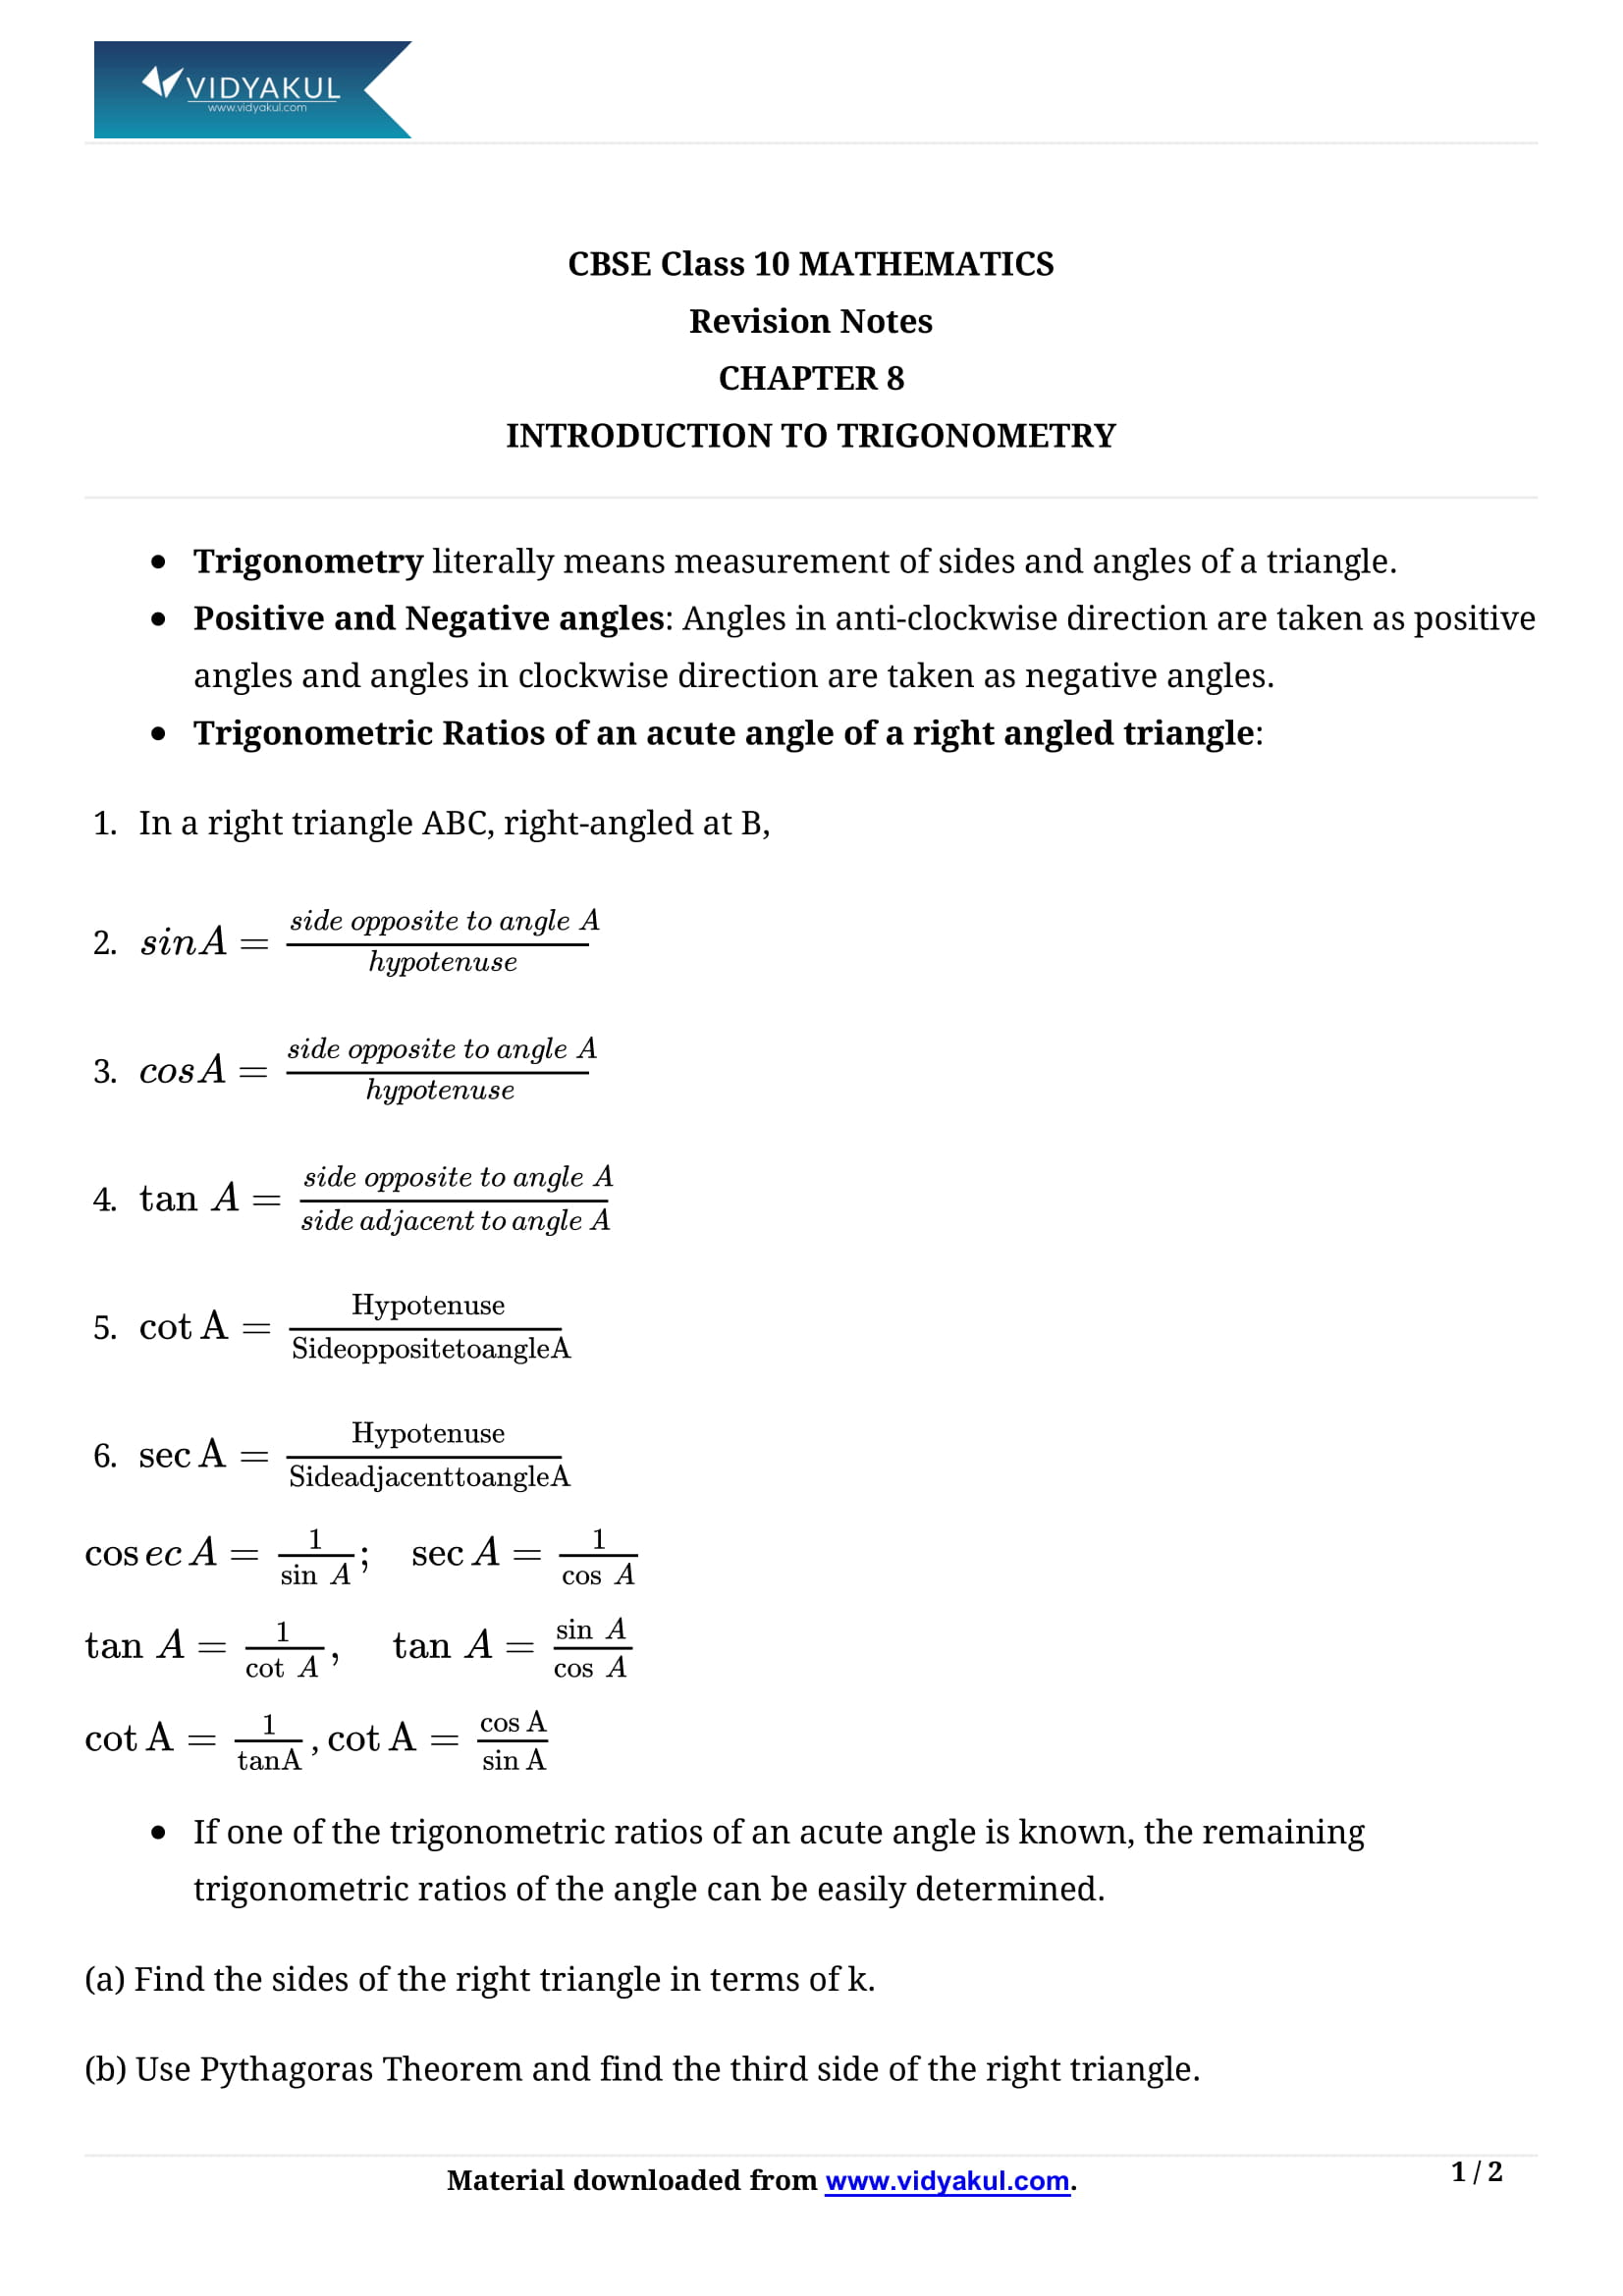 Introduction to Trigonometry Class 10 Notes | Vidyakul